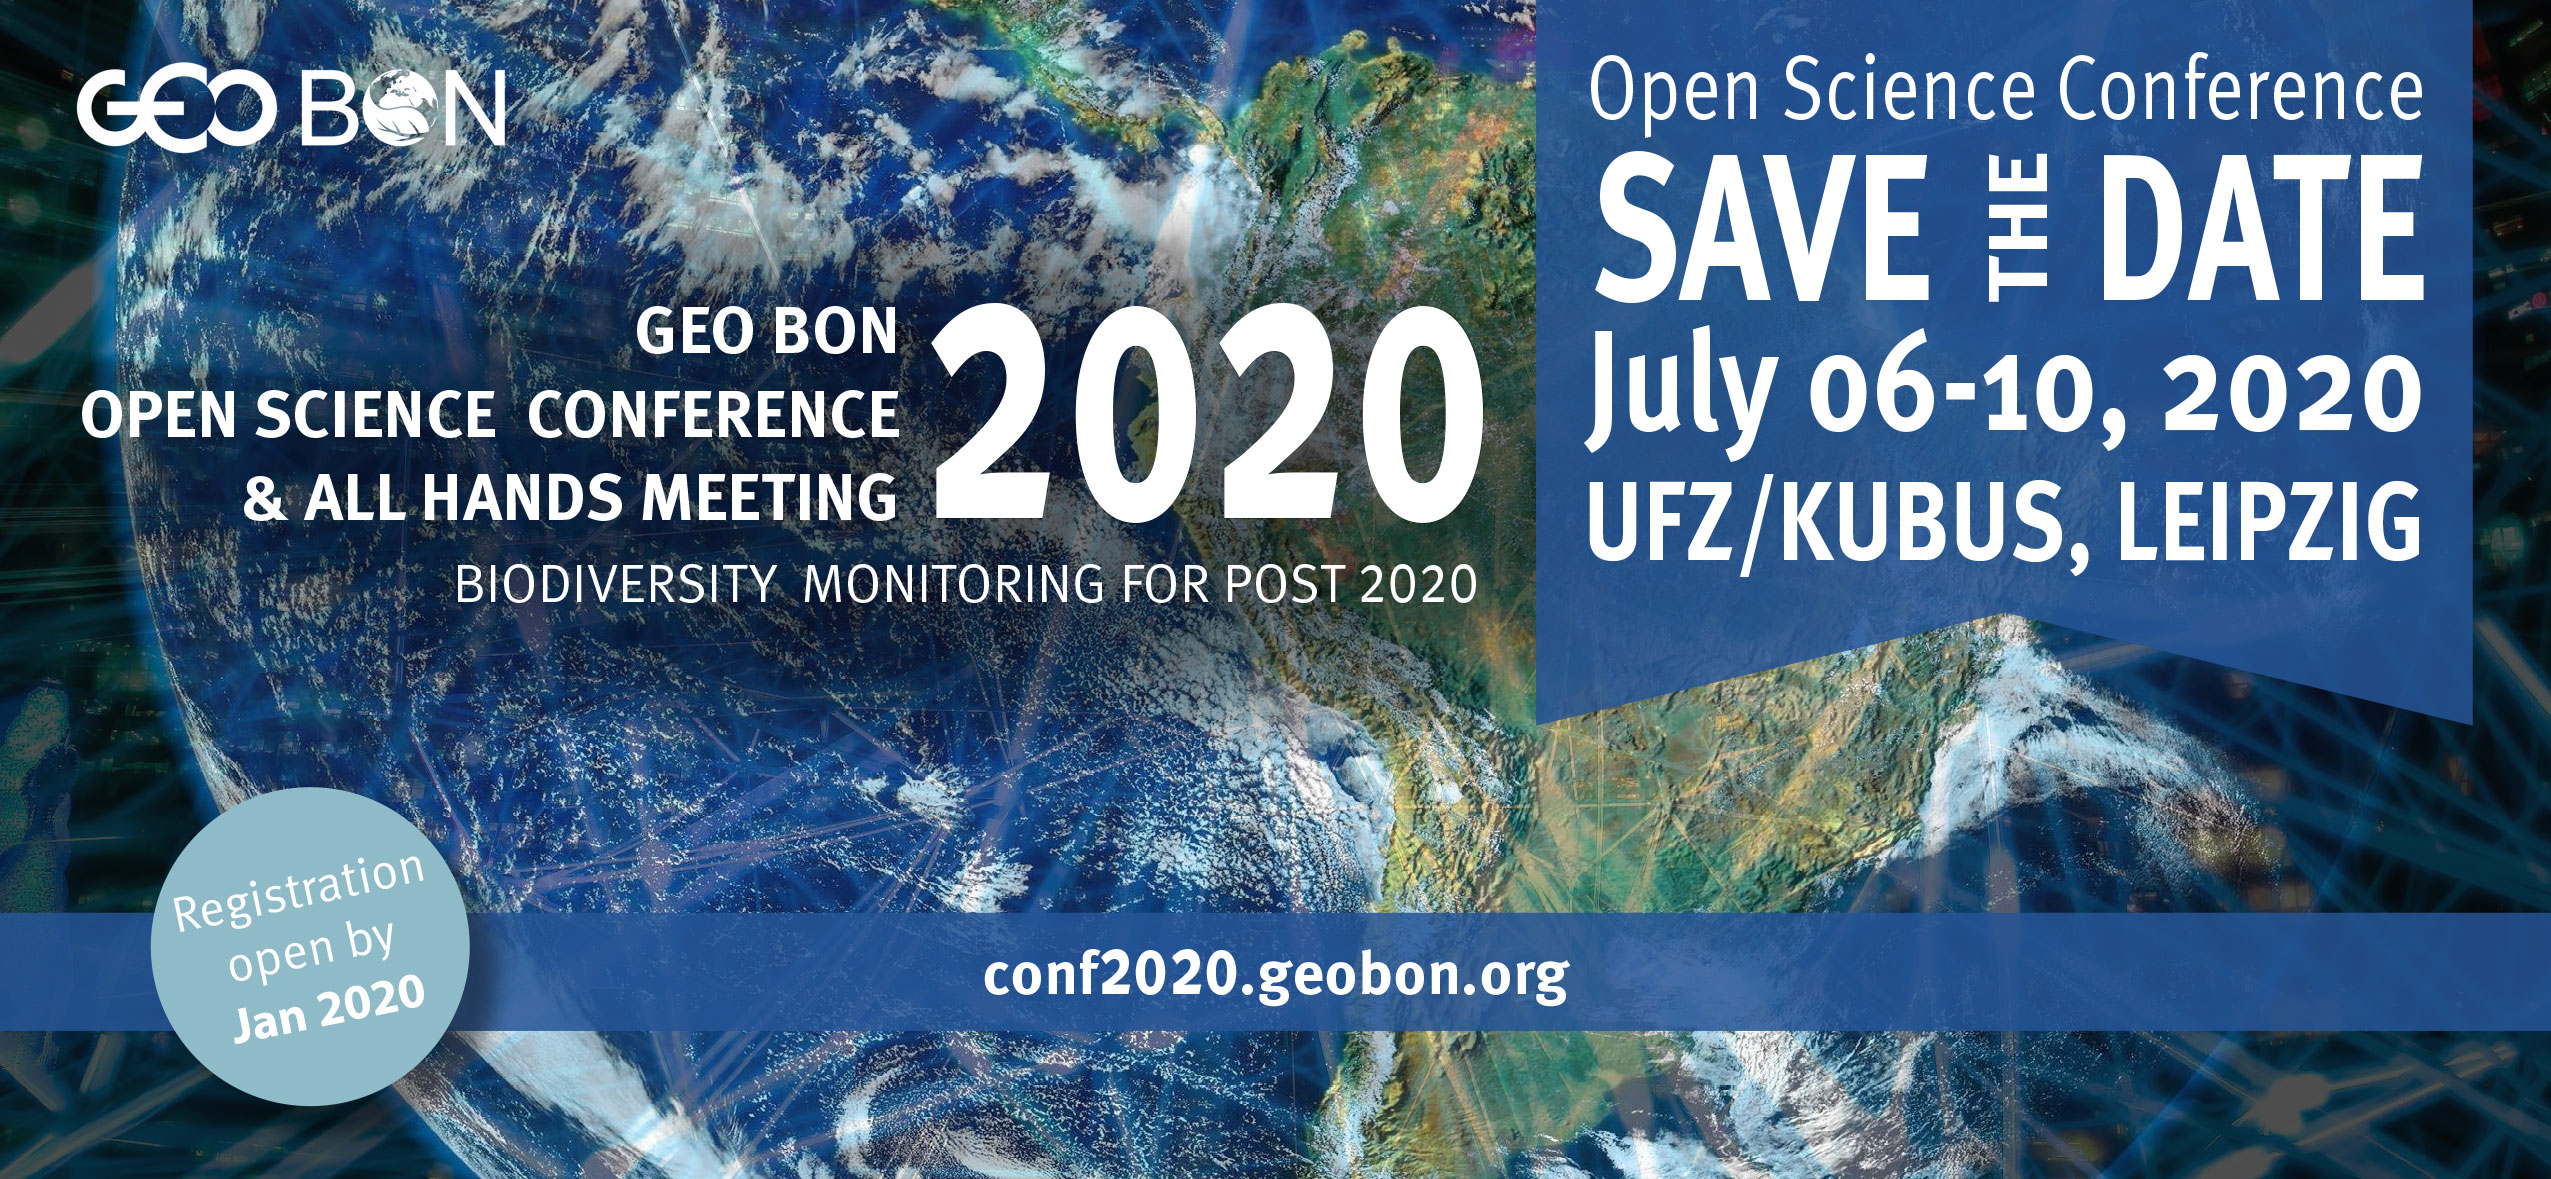 GEO BON OPEN SCIENCE CONFERENCE 2020